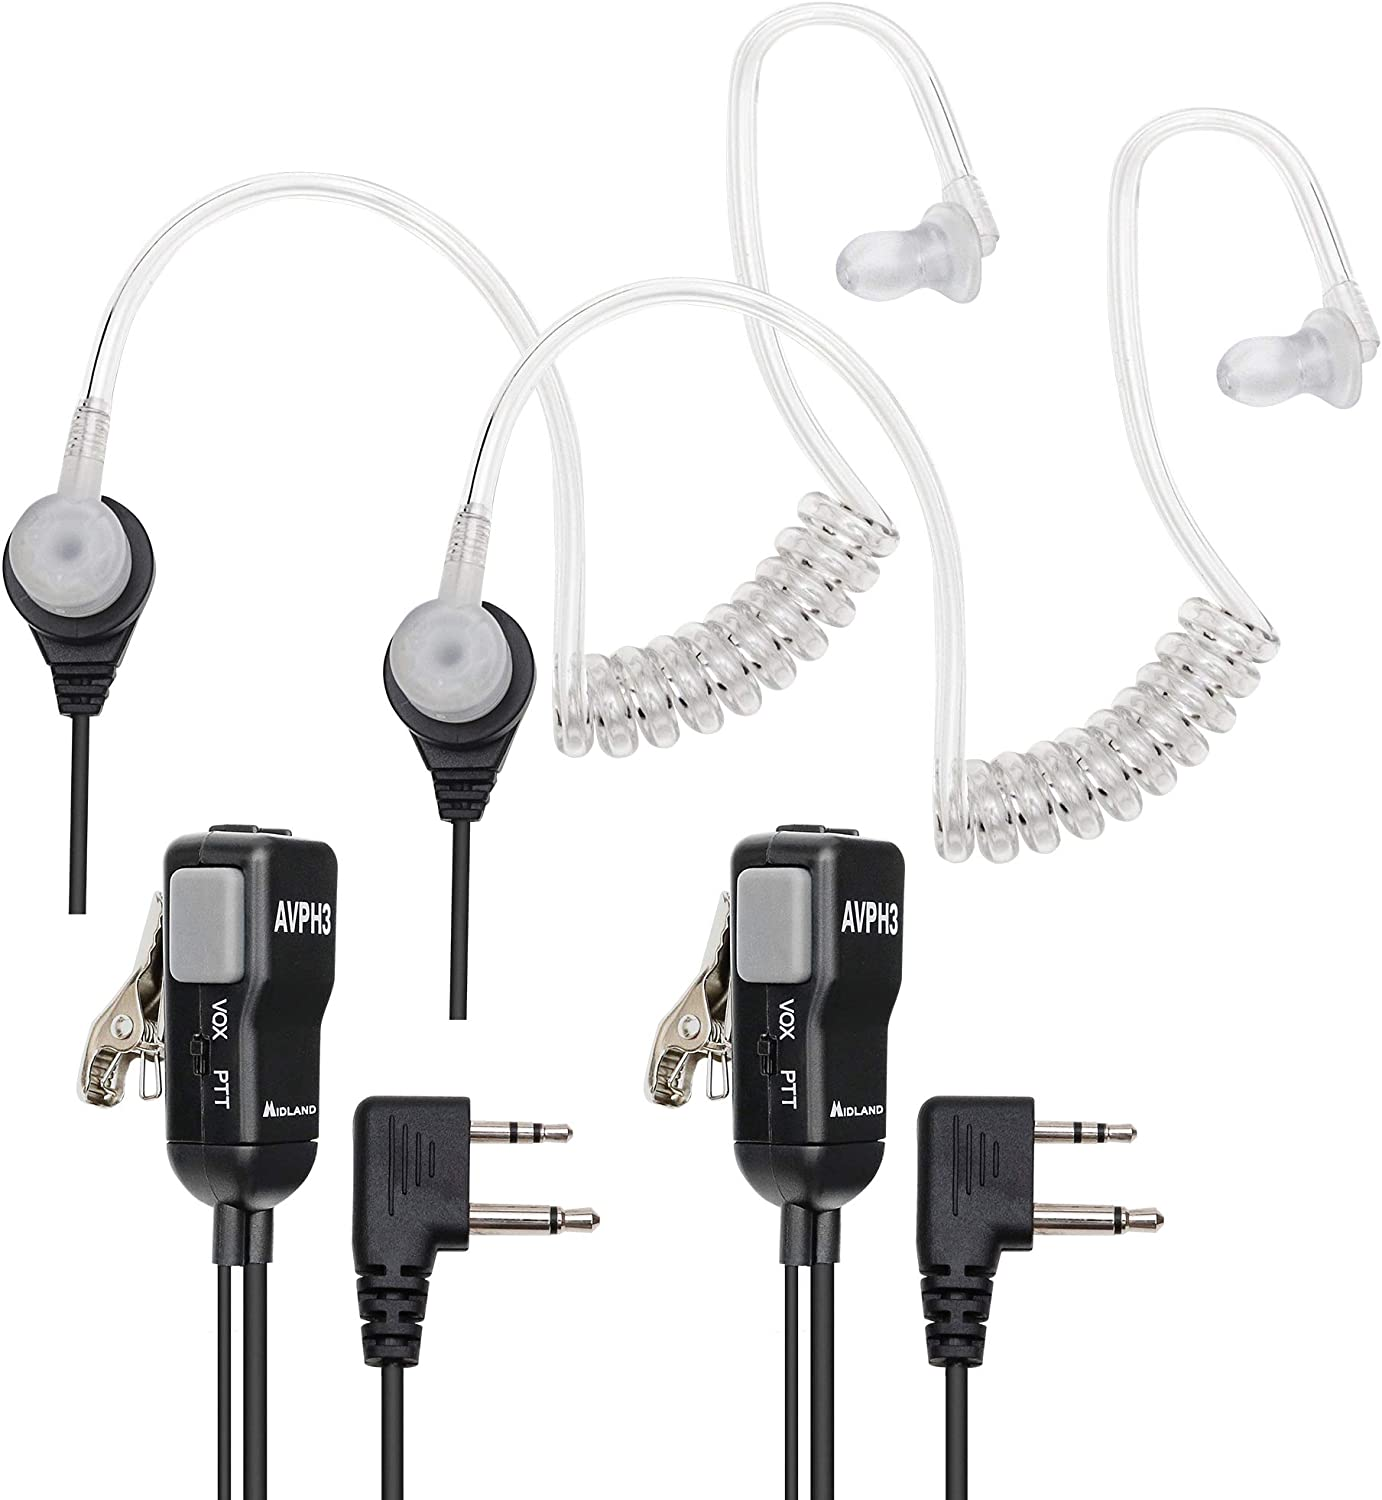 Midland AVPH3 AVP-H3 Security Surveillance Headsets for Midland Radio Pair